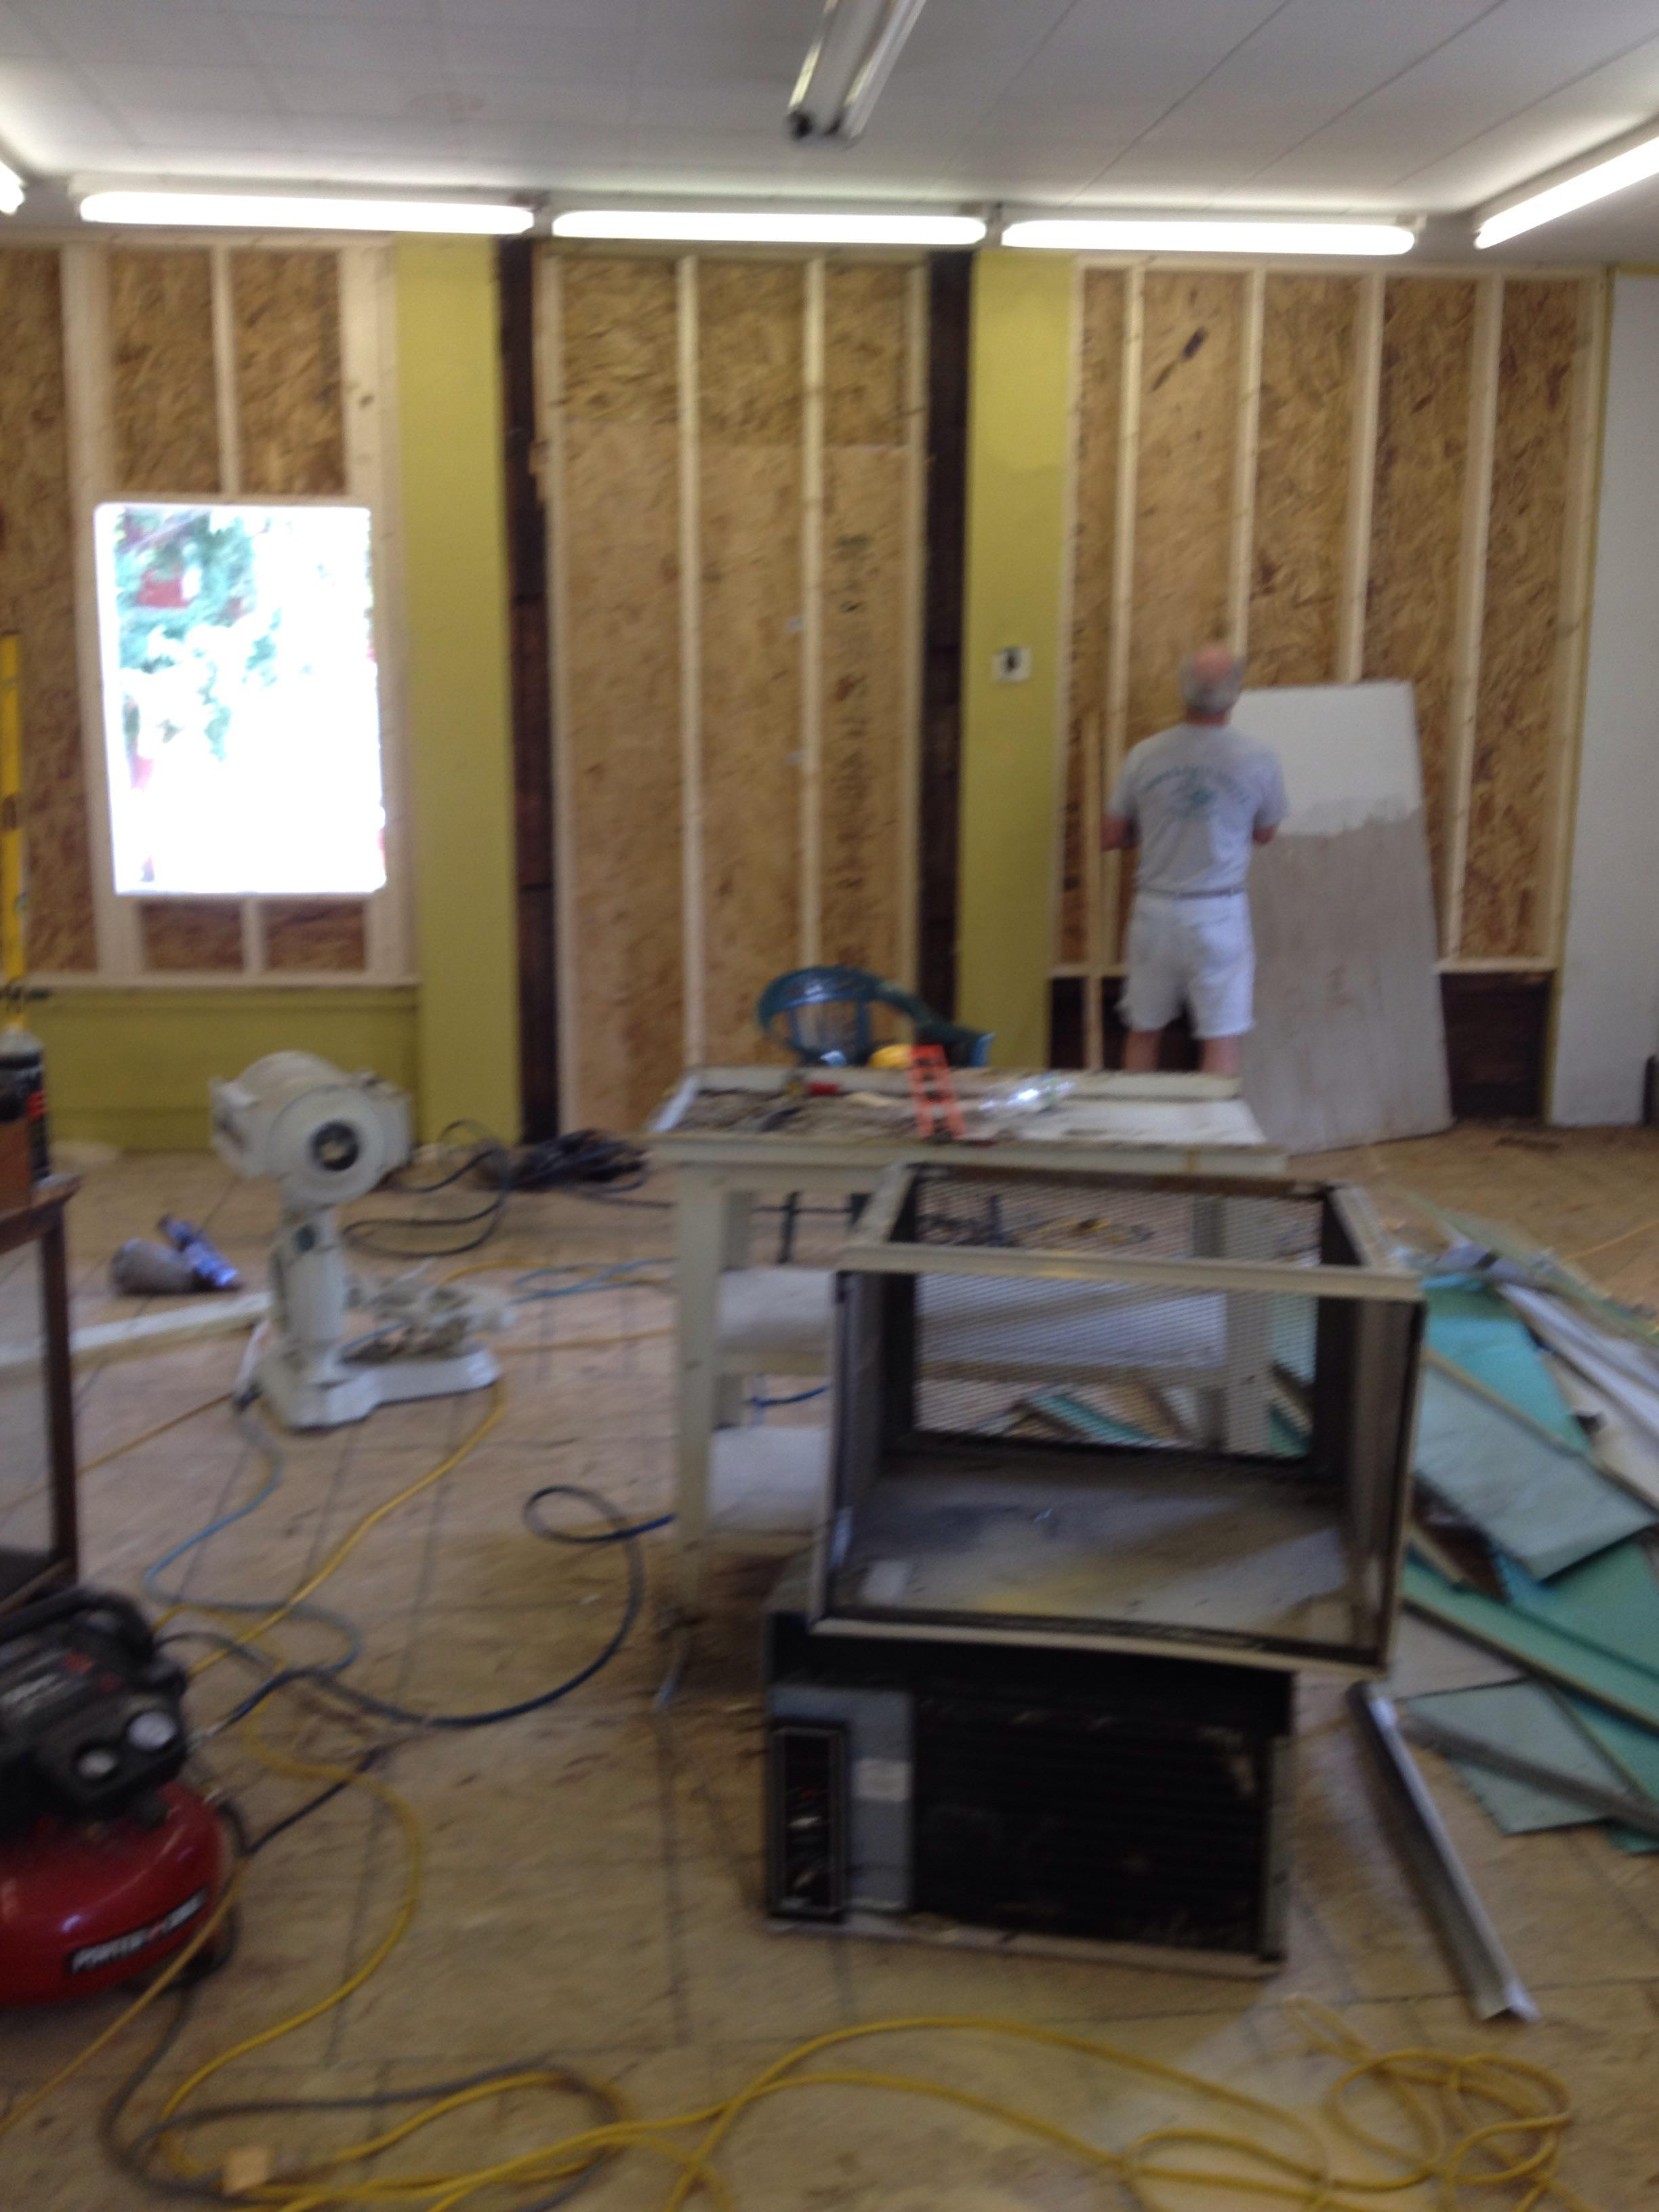 Michael Young Building And Remodeling Inc.